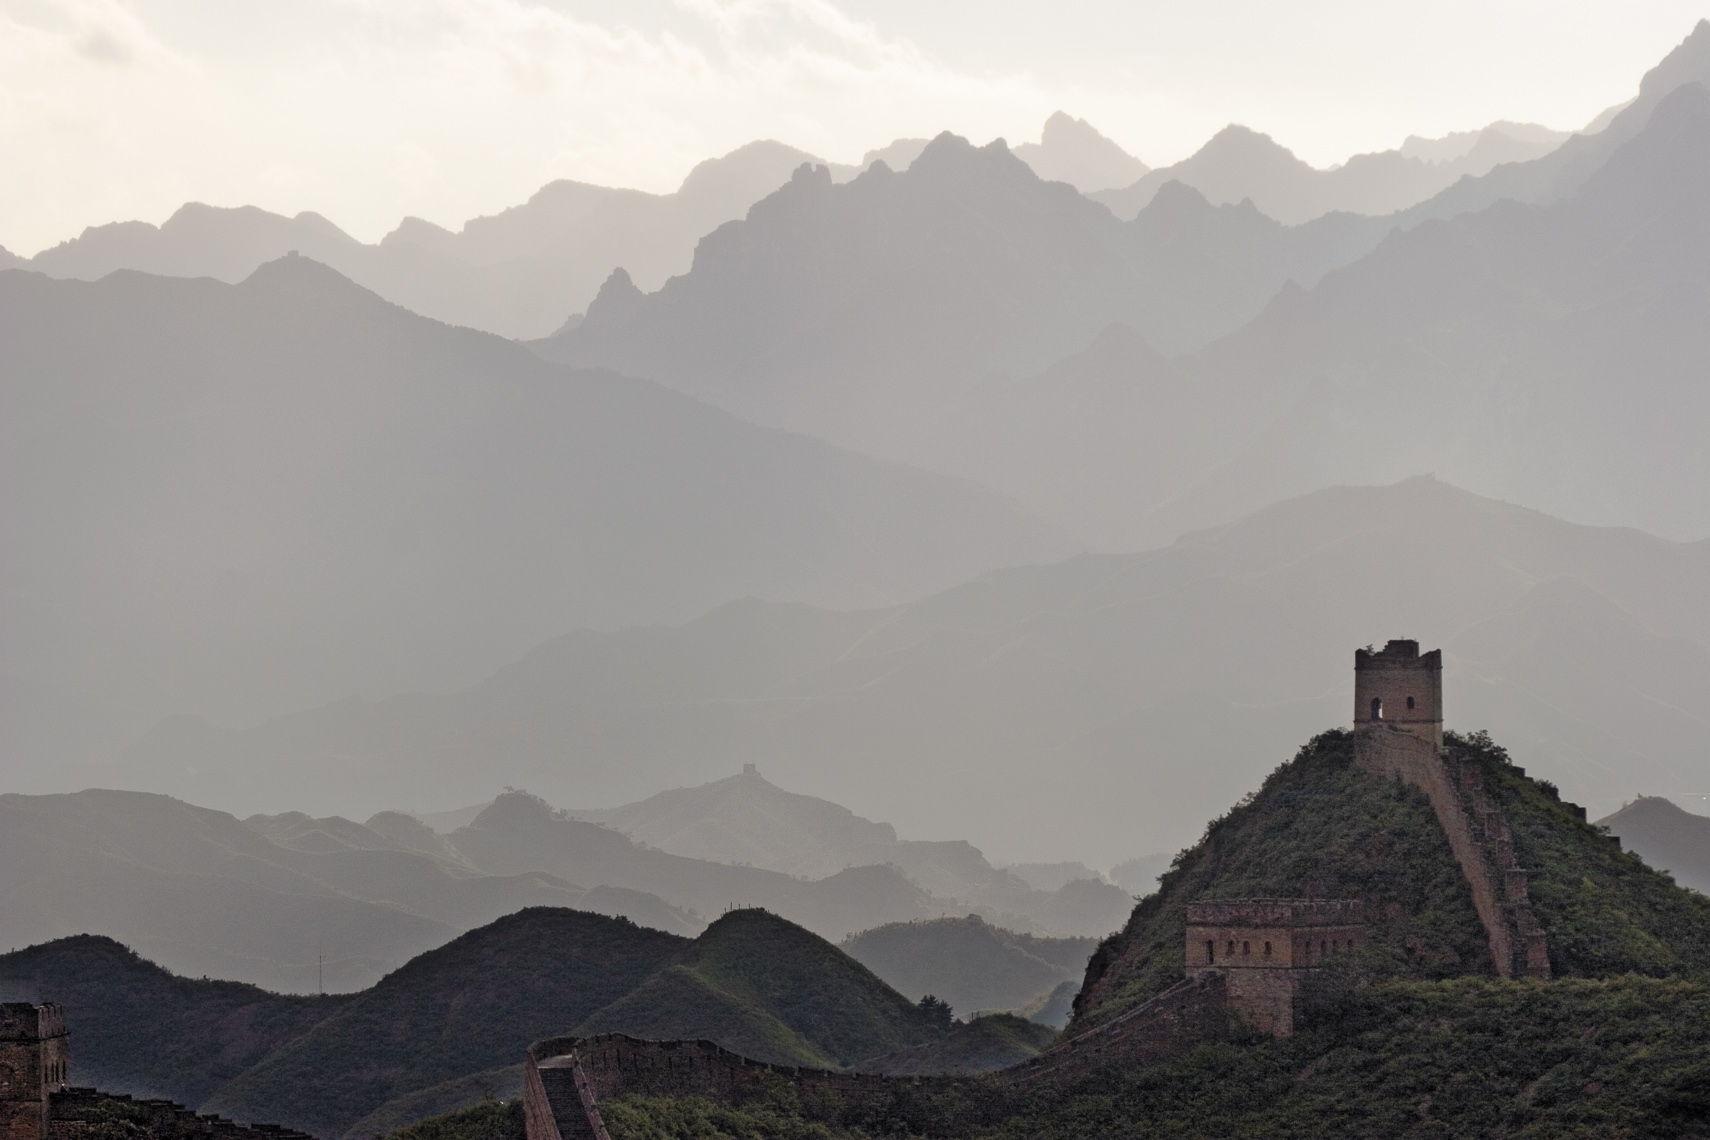 GreatWall_08.jpg